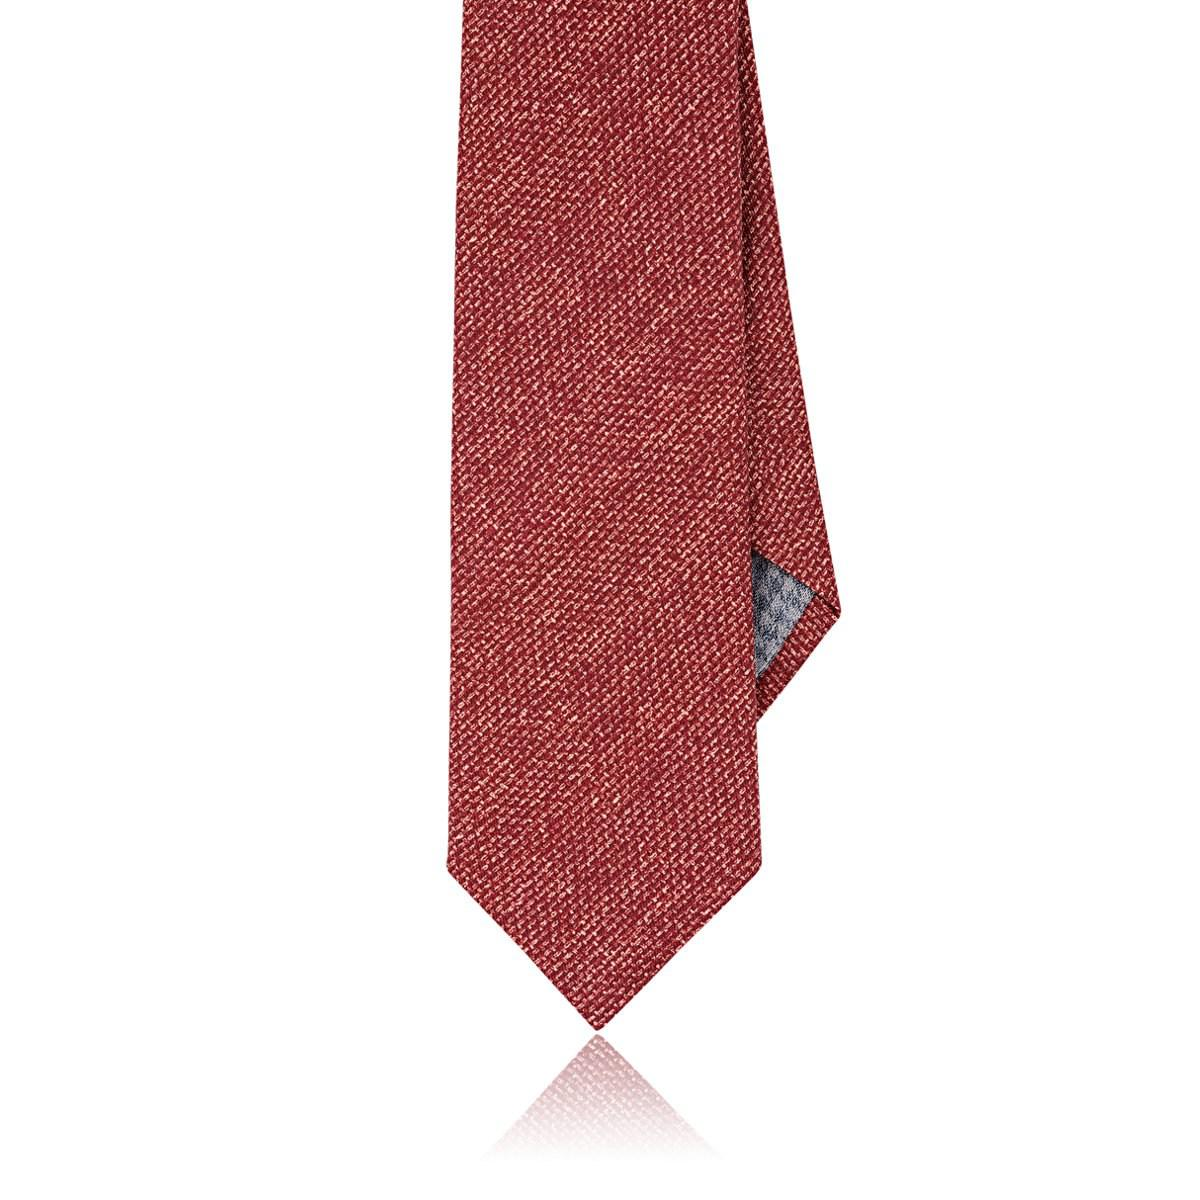 Hommes Rayé Cravate Lin Coton Tweed-look Paolo Albizzati hv8iqA8lCr